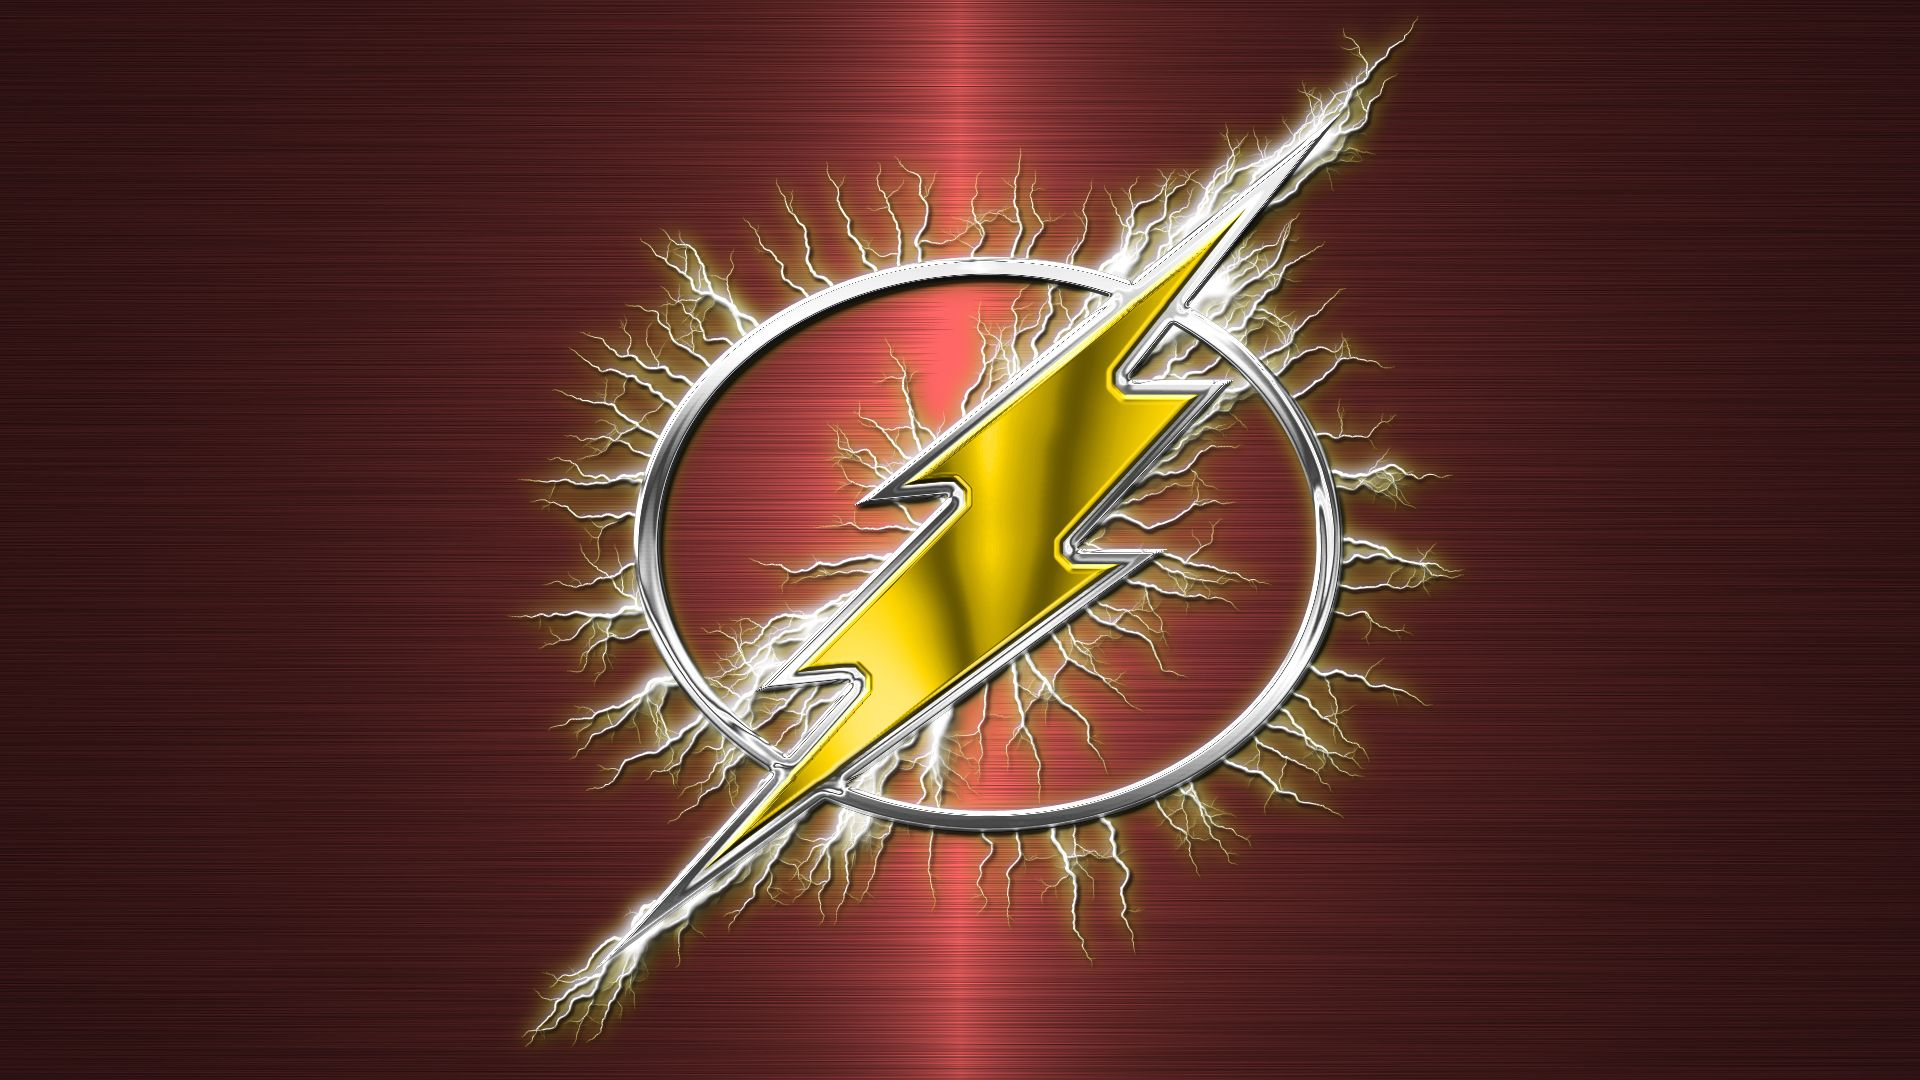 Cool Flash Wallpapers.